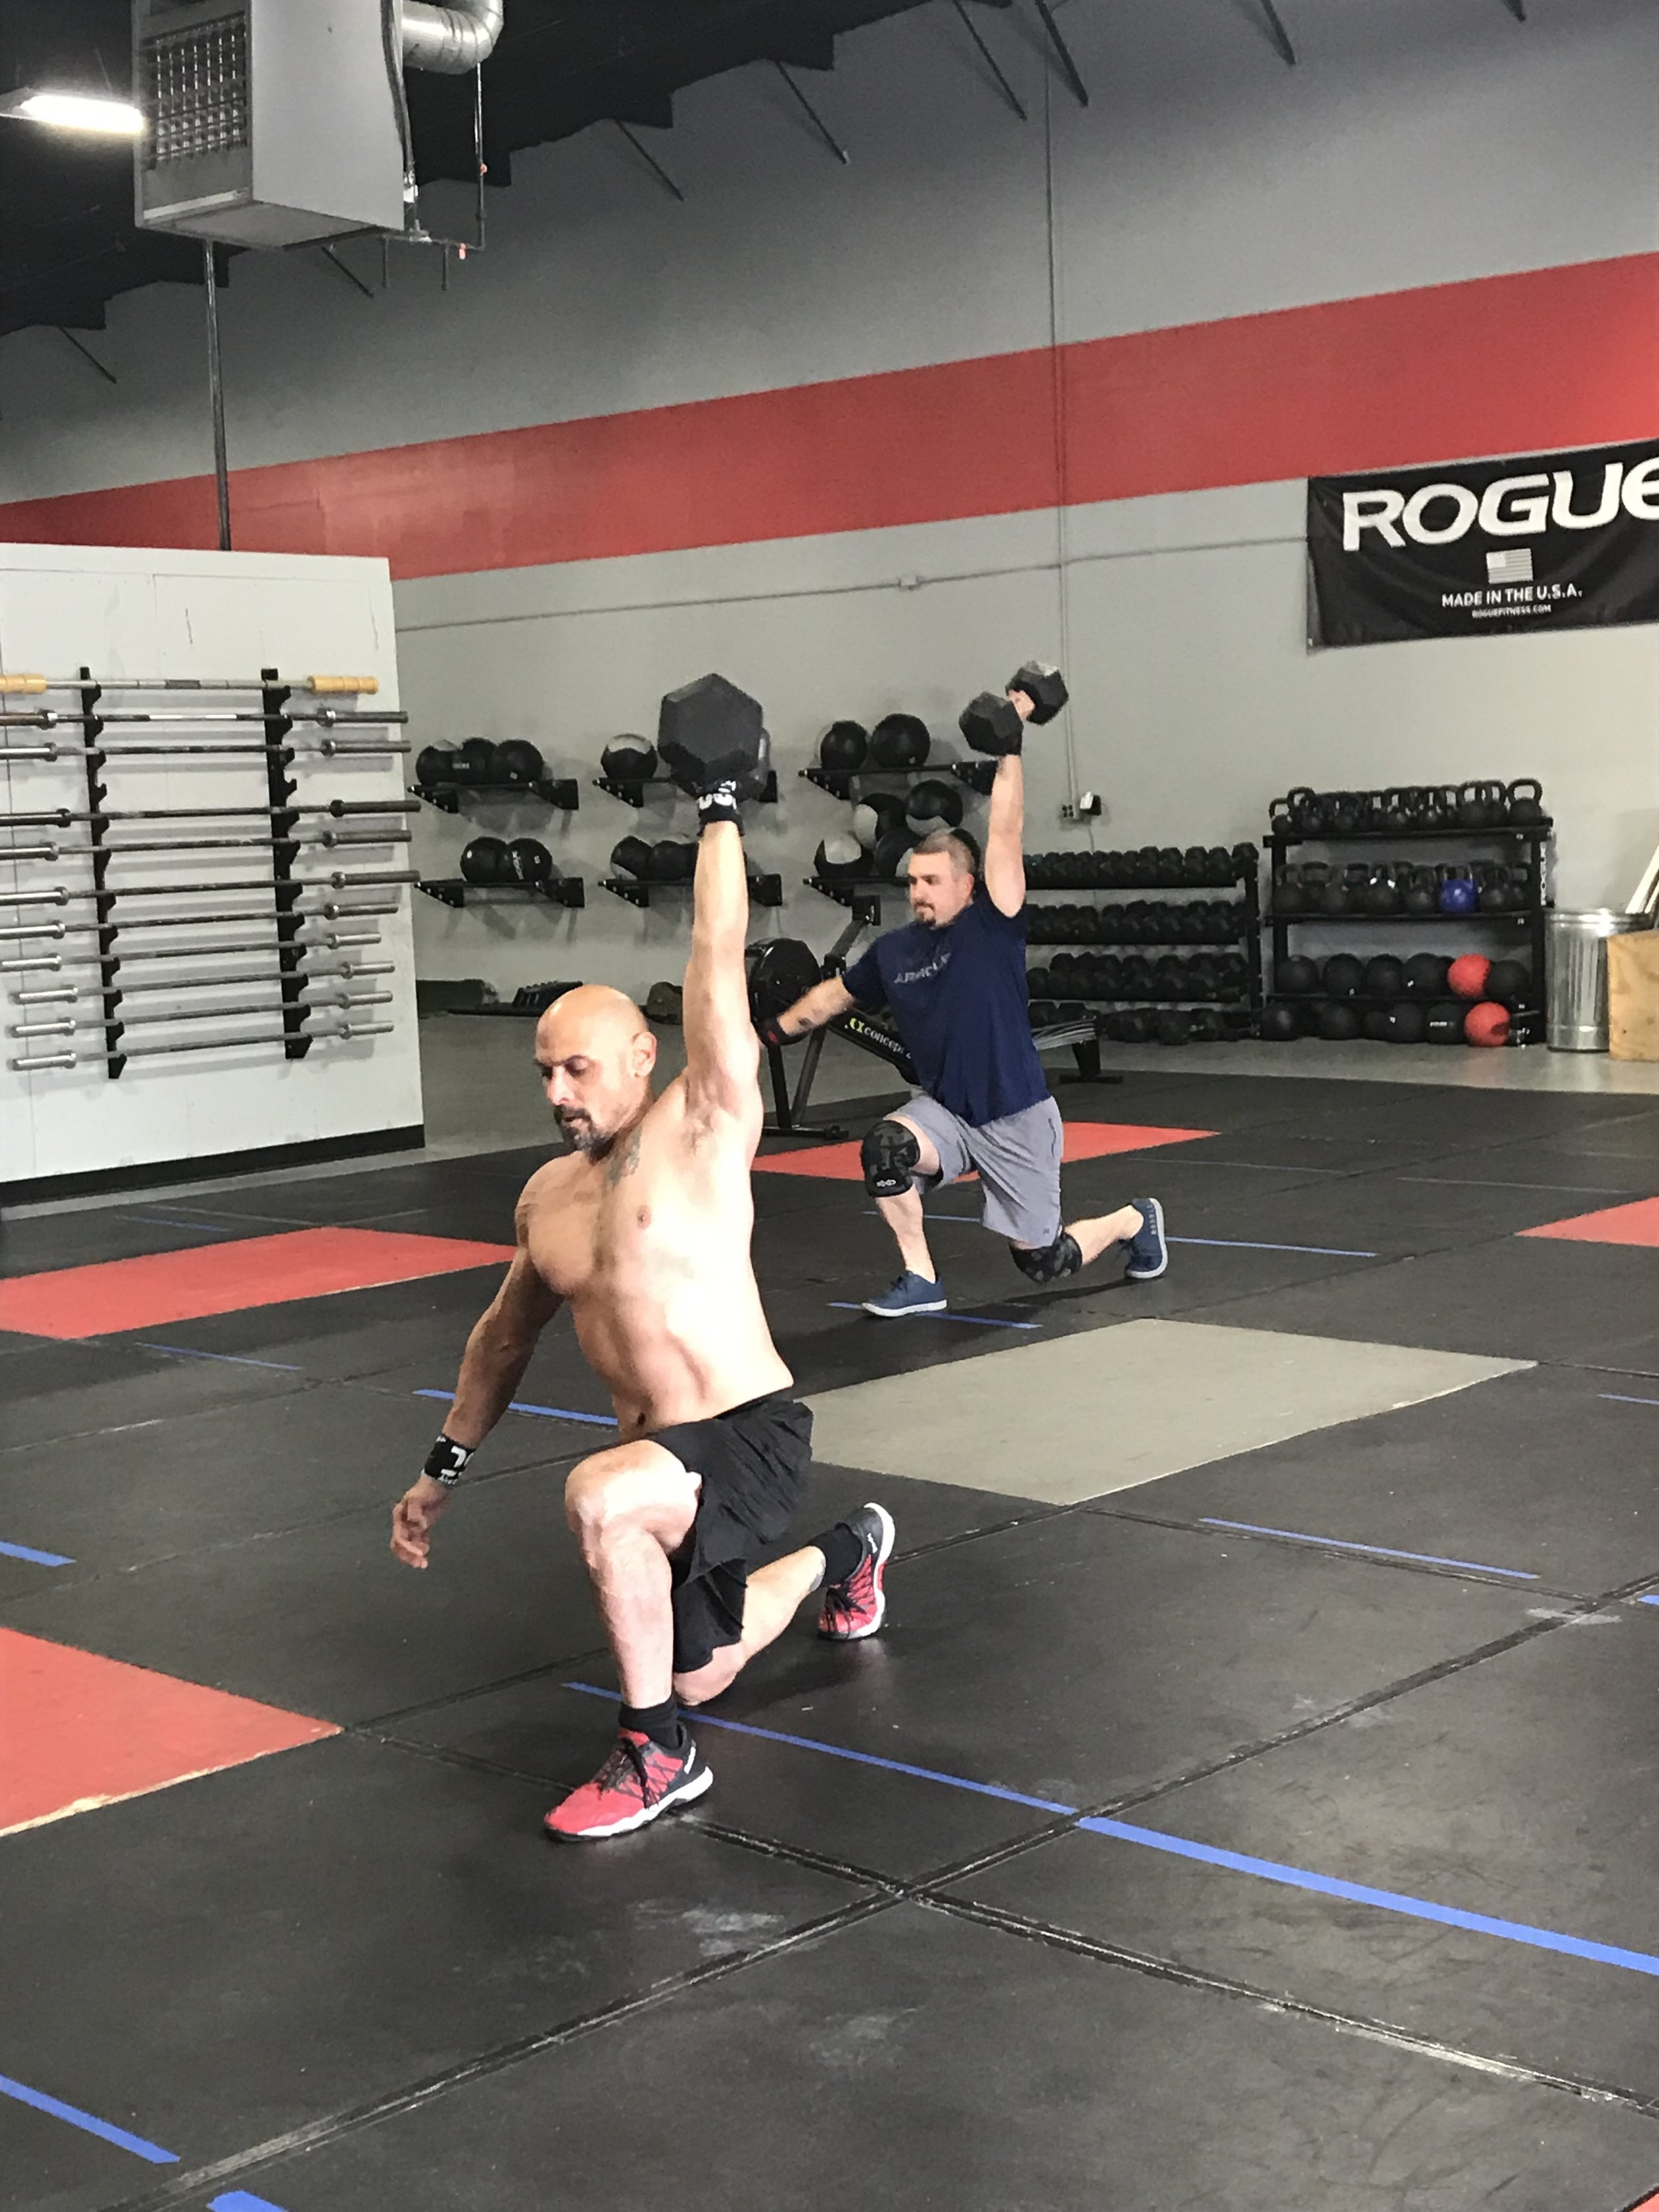 Effective Workouts - Train like a pro. Our trainers have worked with everyone from new beginners to professional athletes. We focus on workouts that have the proper mix of stress and recovery to ensure the right type of training every time.